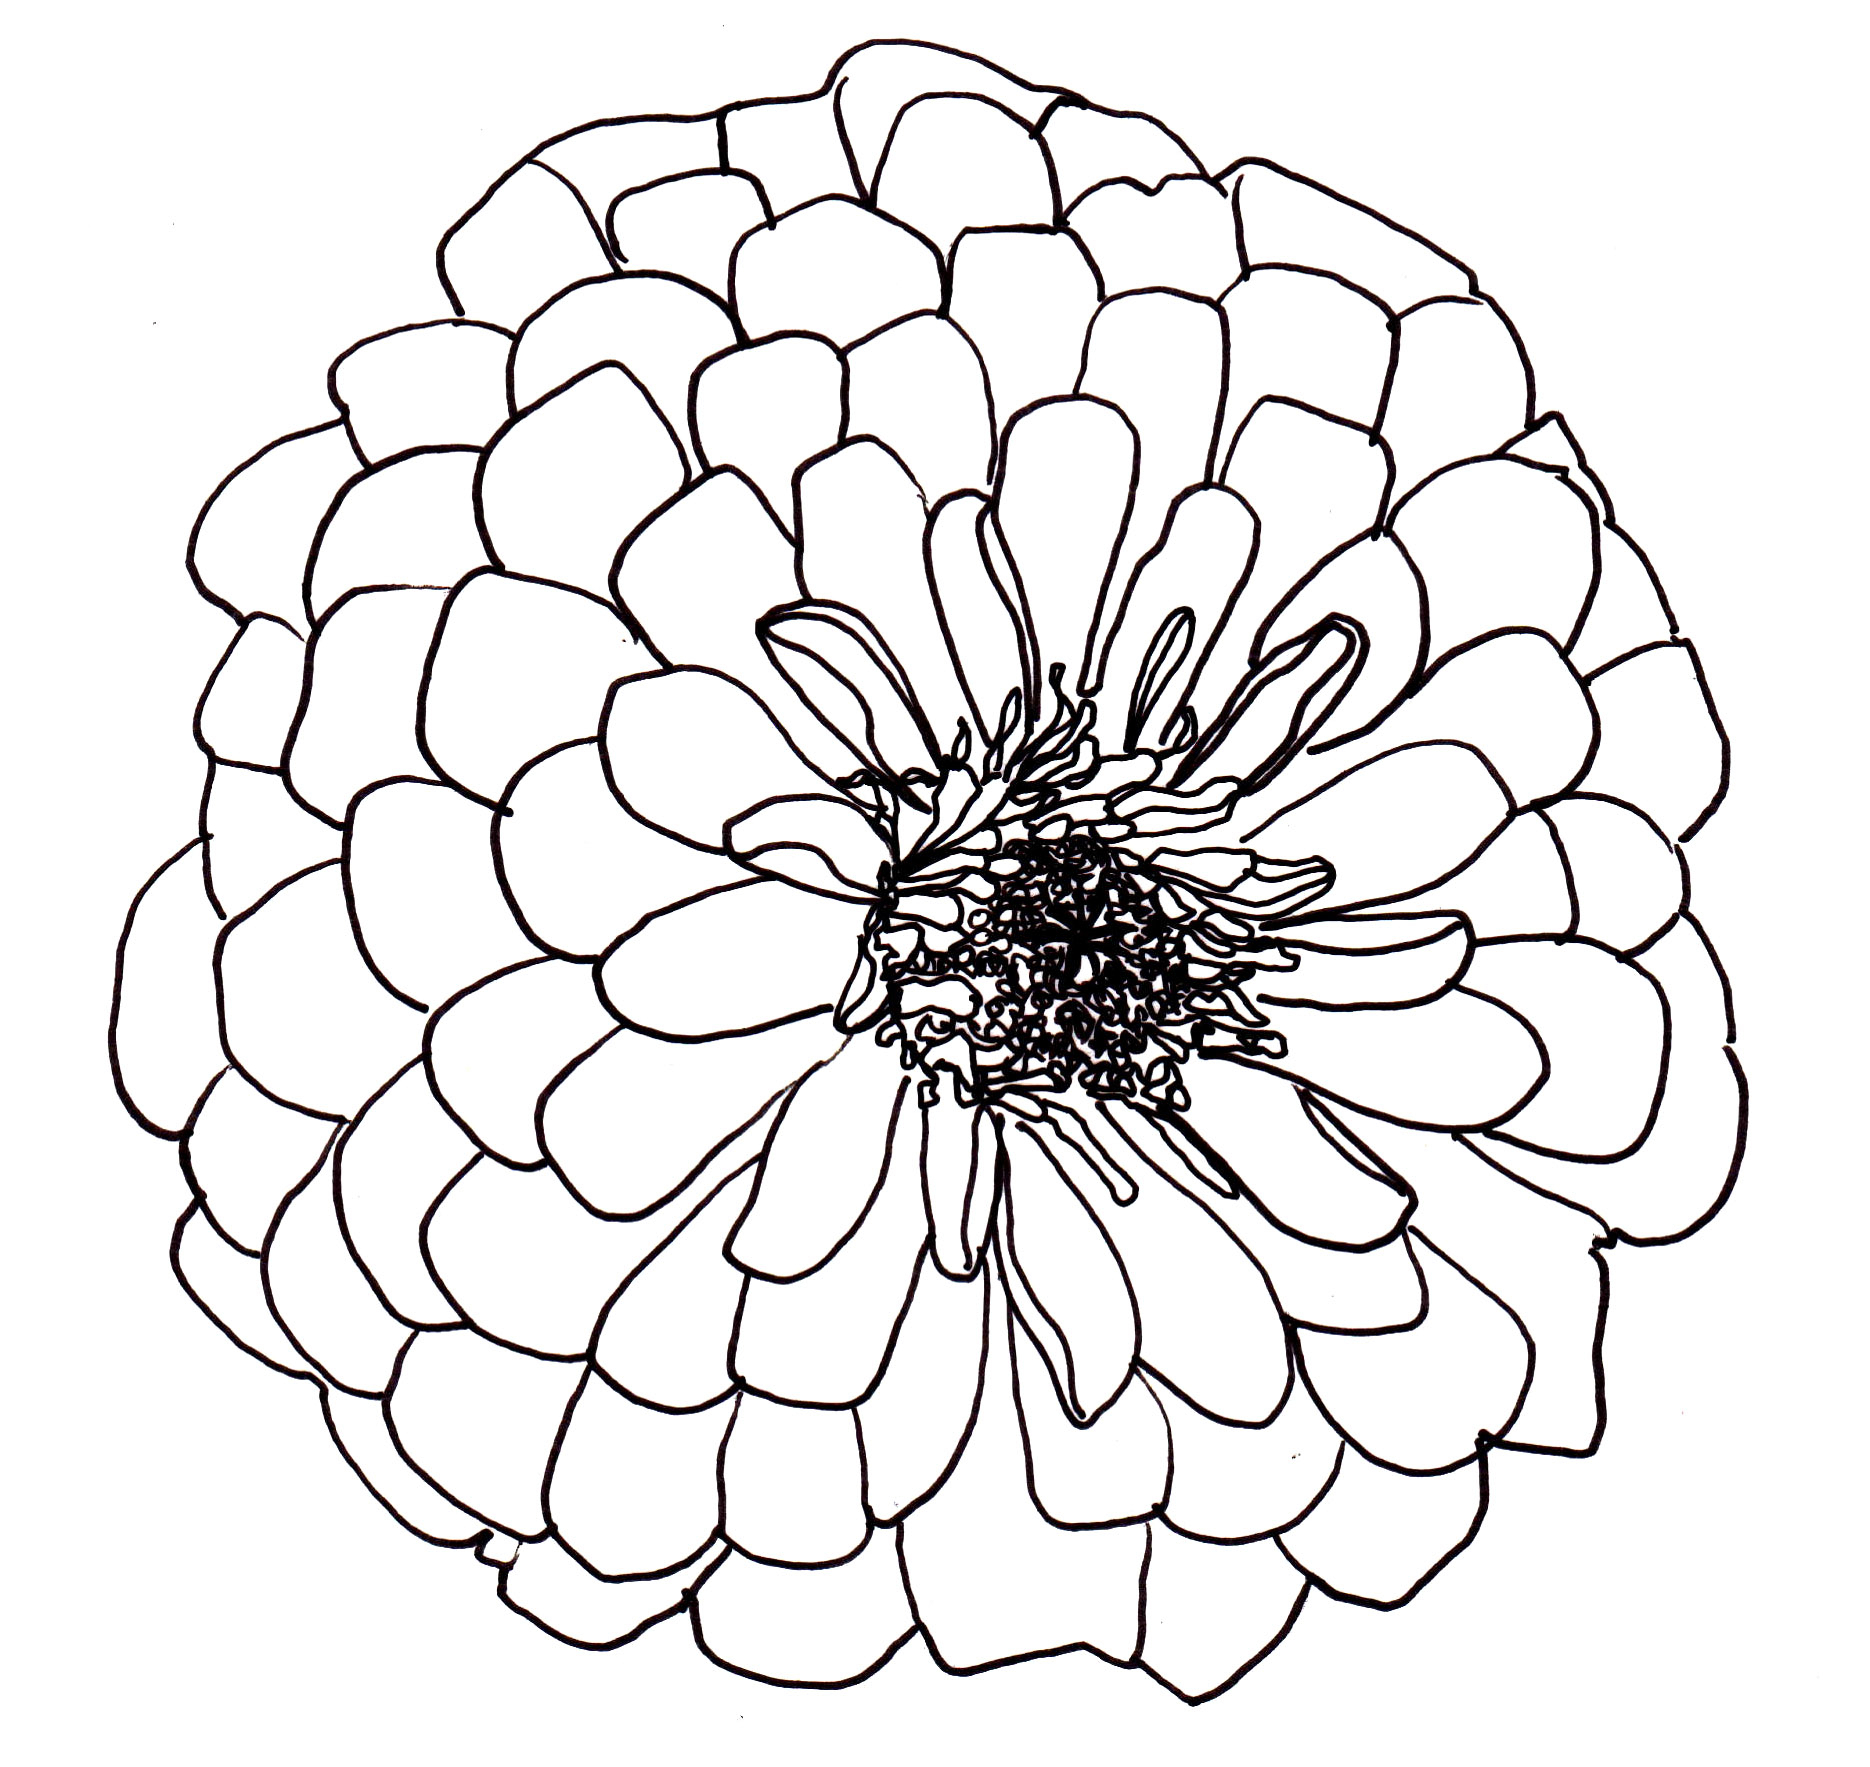 Dahlia drawing at getdrawings free for personal use dahlia 1870x1767 black dahlia flower drawing drawn flower dahlia izmirmasajfo Gallery